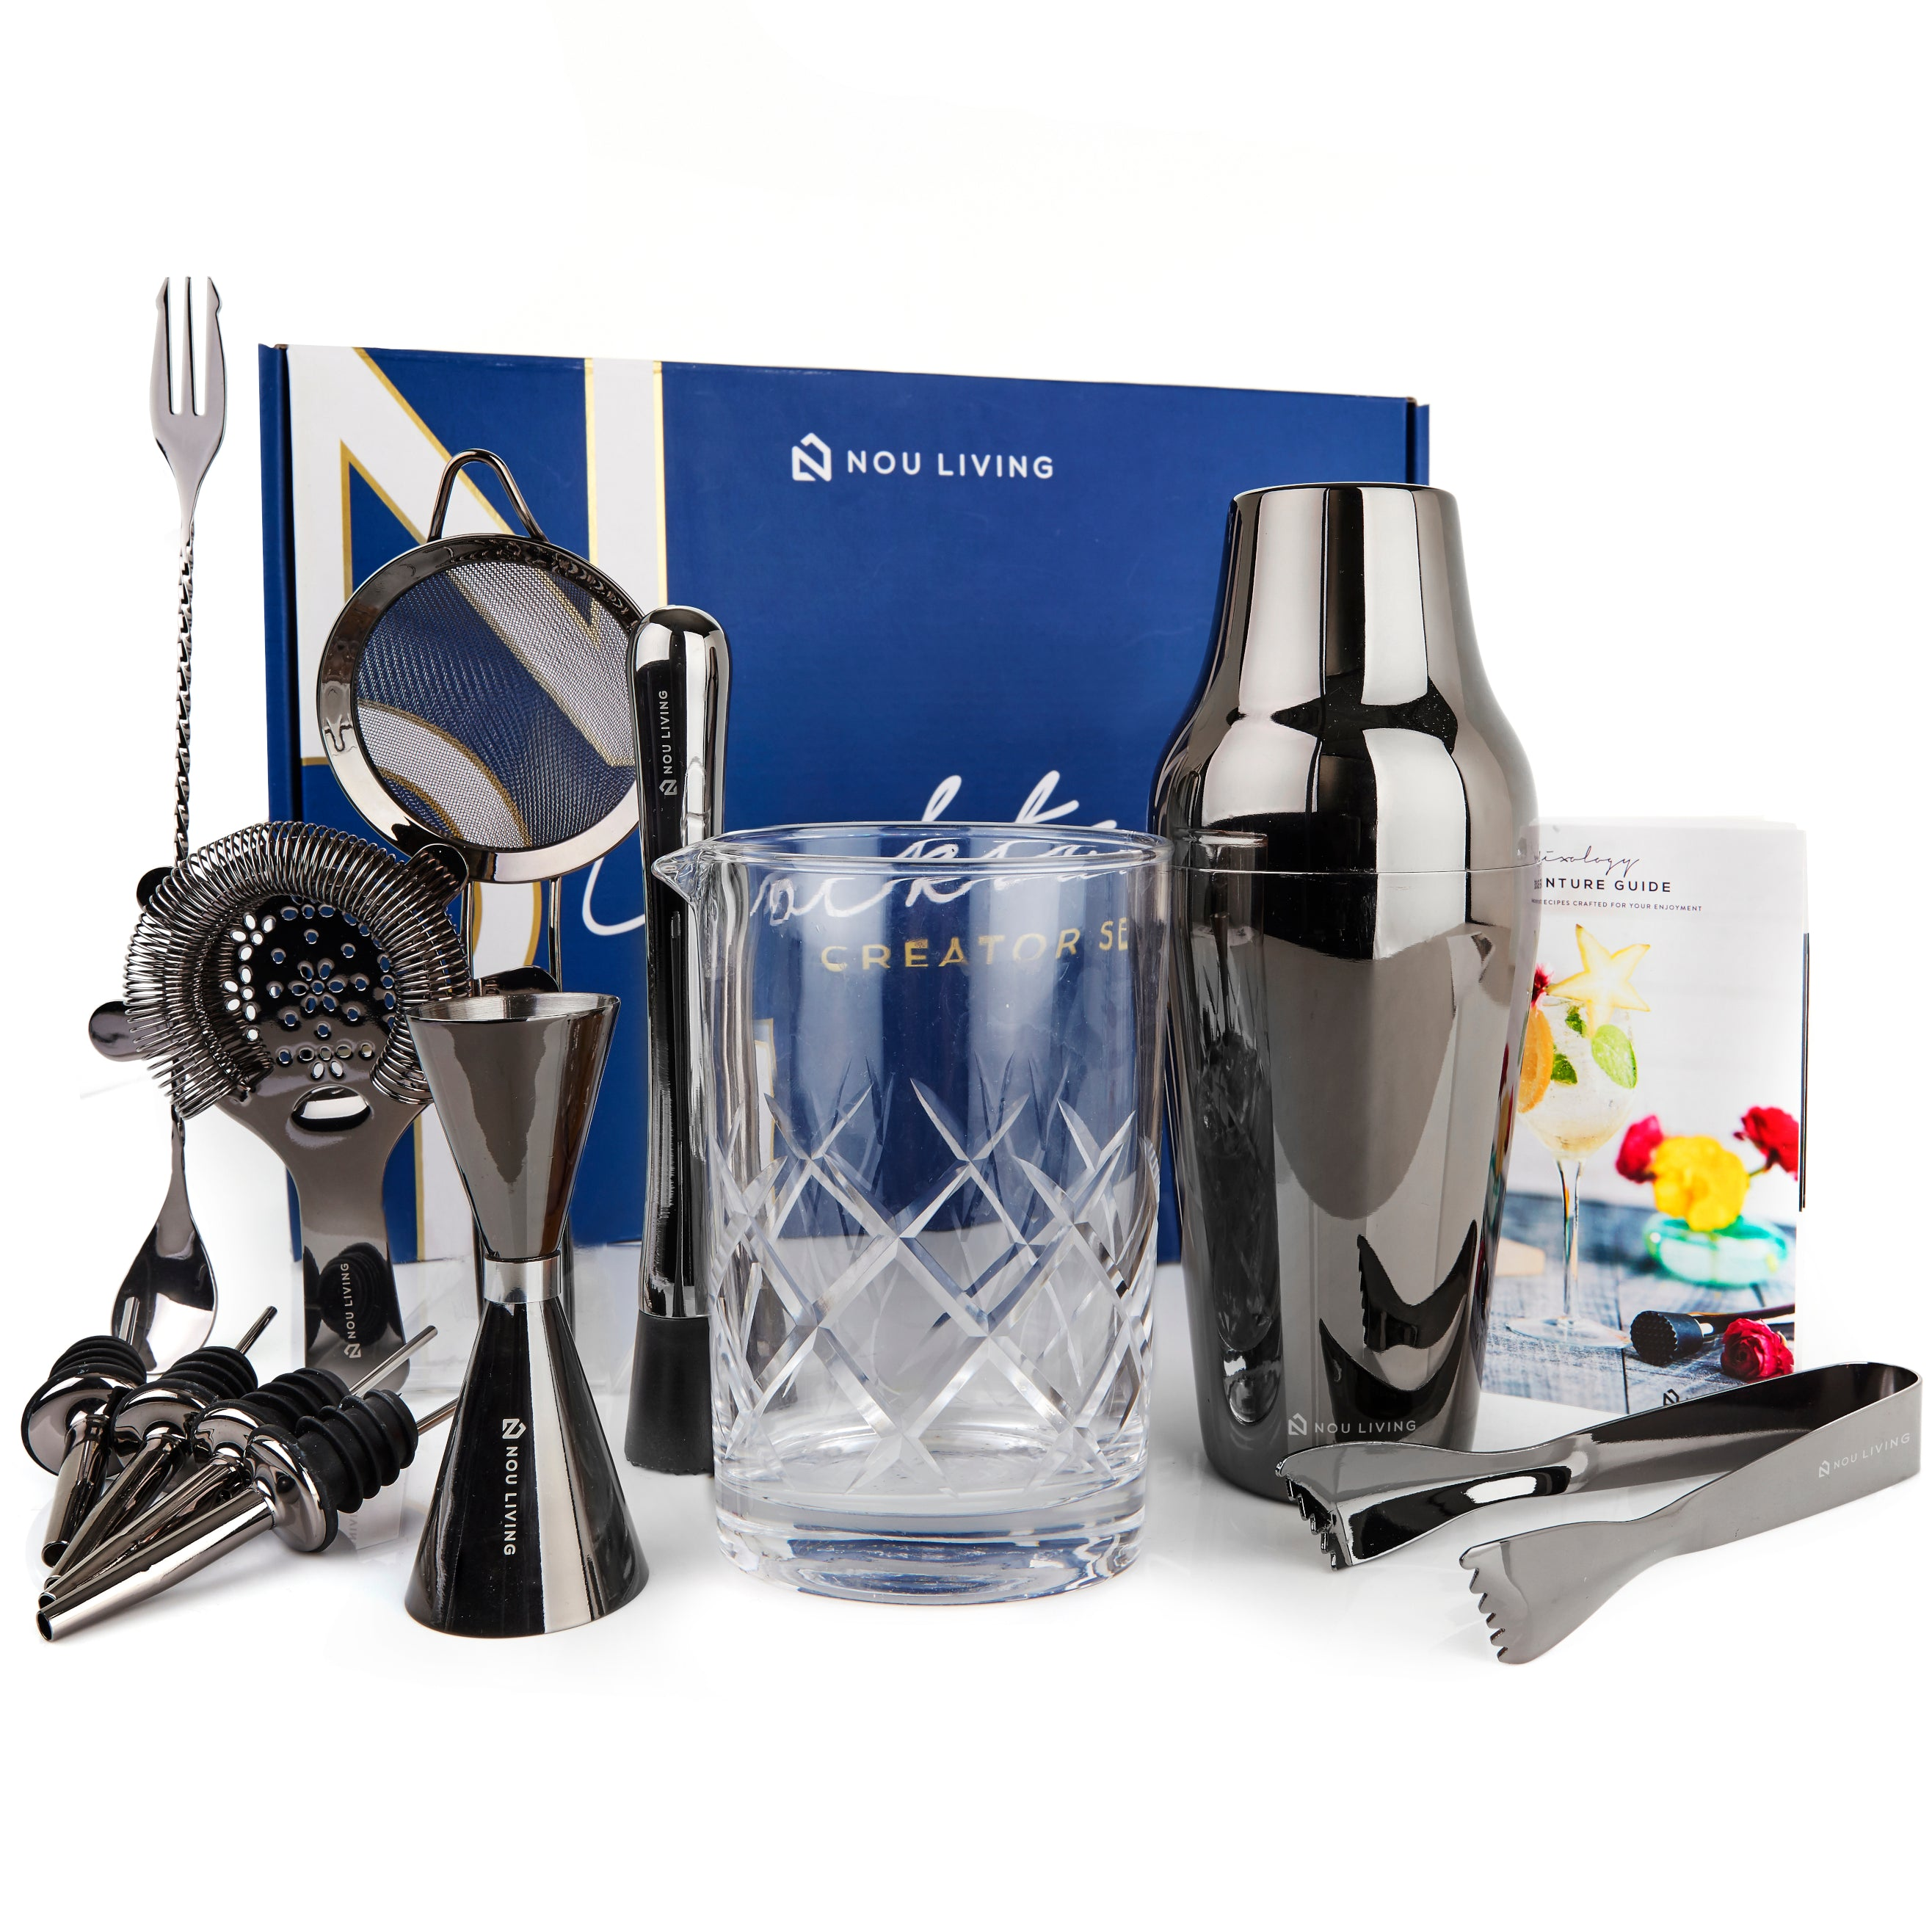 Nou Living Cocktail Creator Set - Gun Metal Black